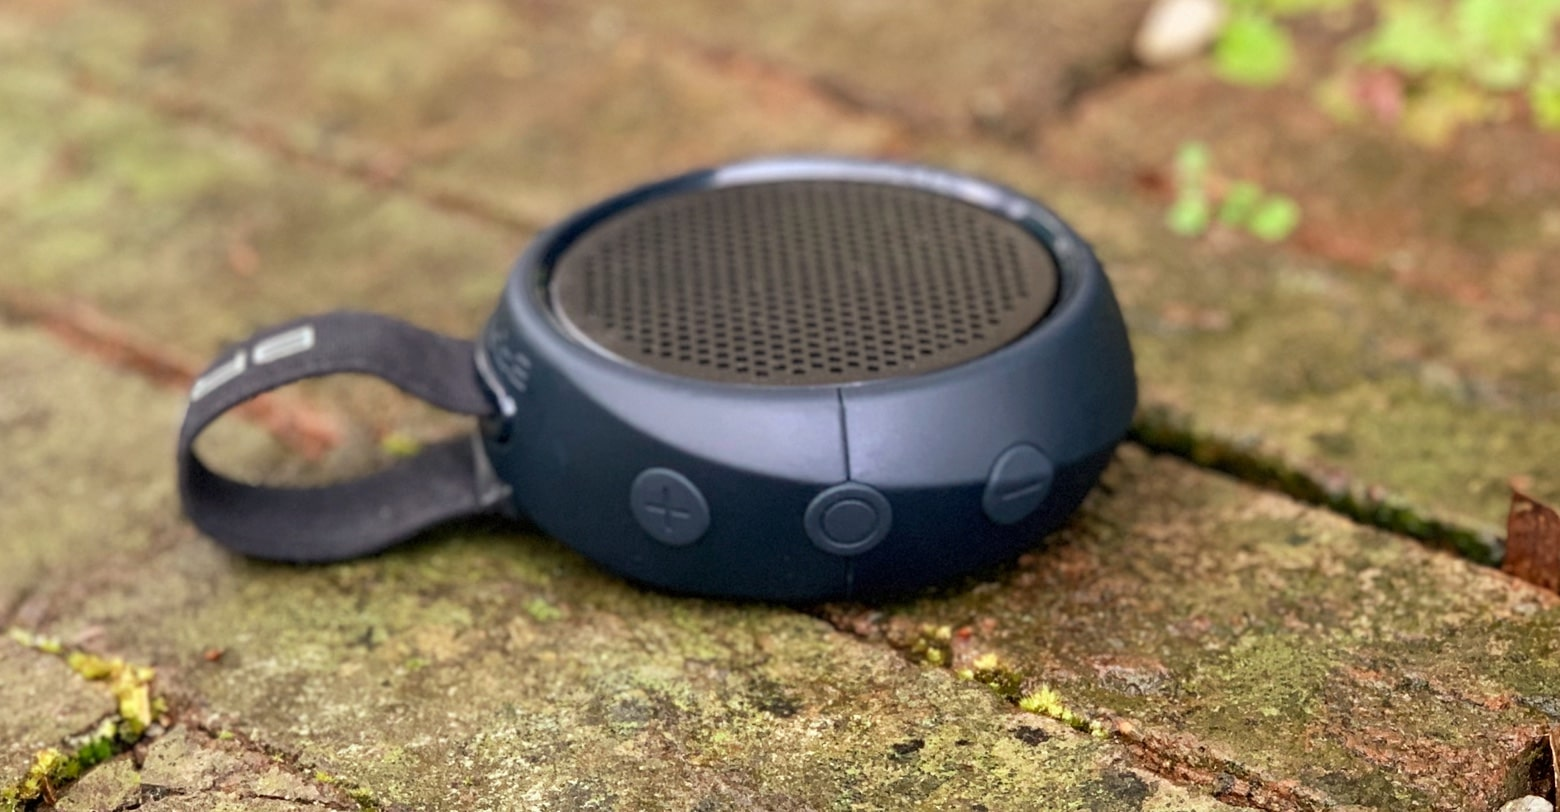 Braven BRV-105 review: This Bluetooth speaker is as active as you are. It's up for biking, sailing ... you name it.